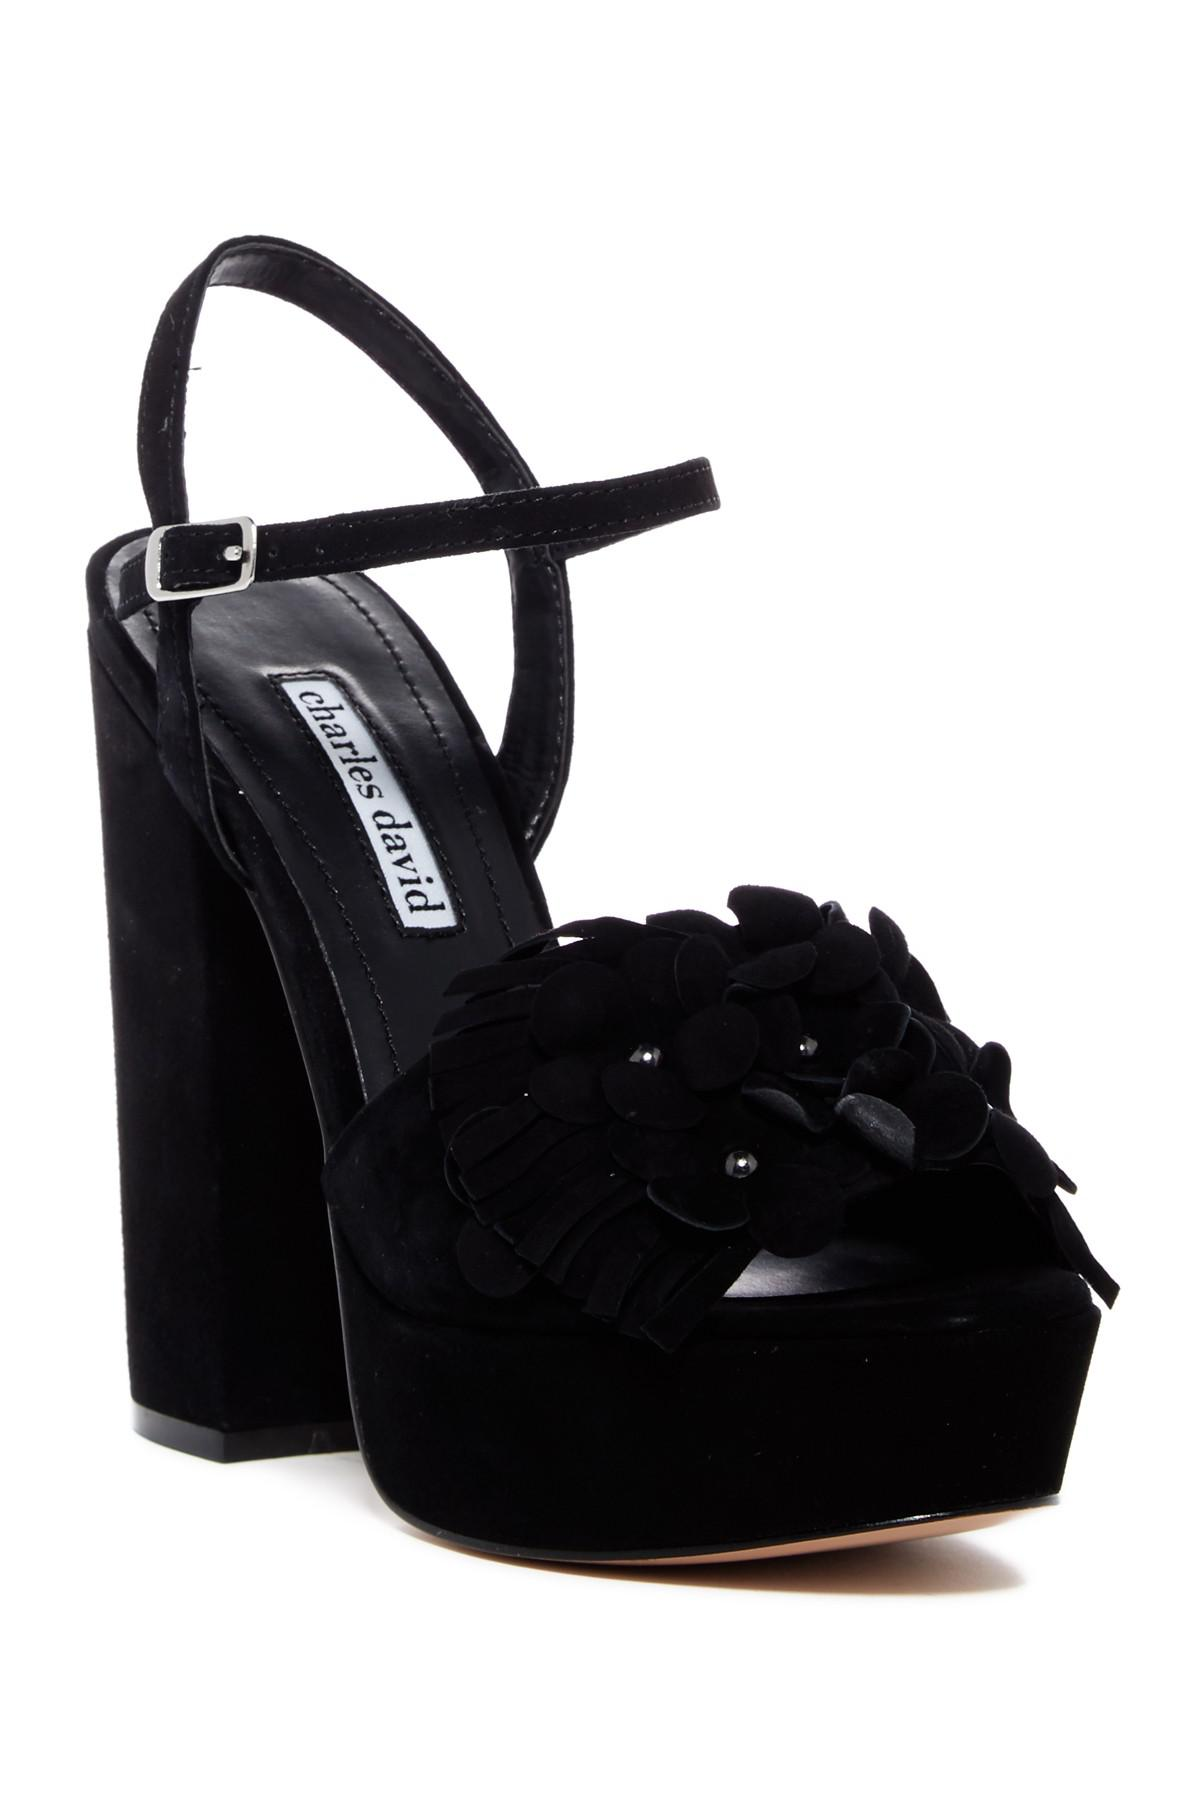 Charles David Royal Platform Sandal